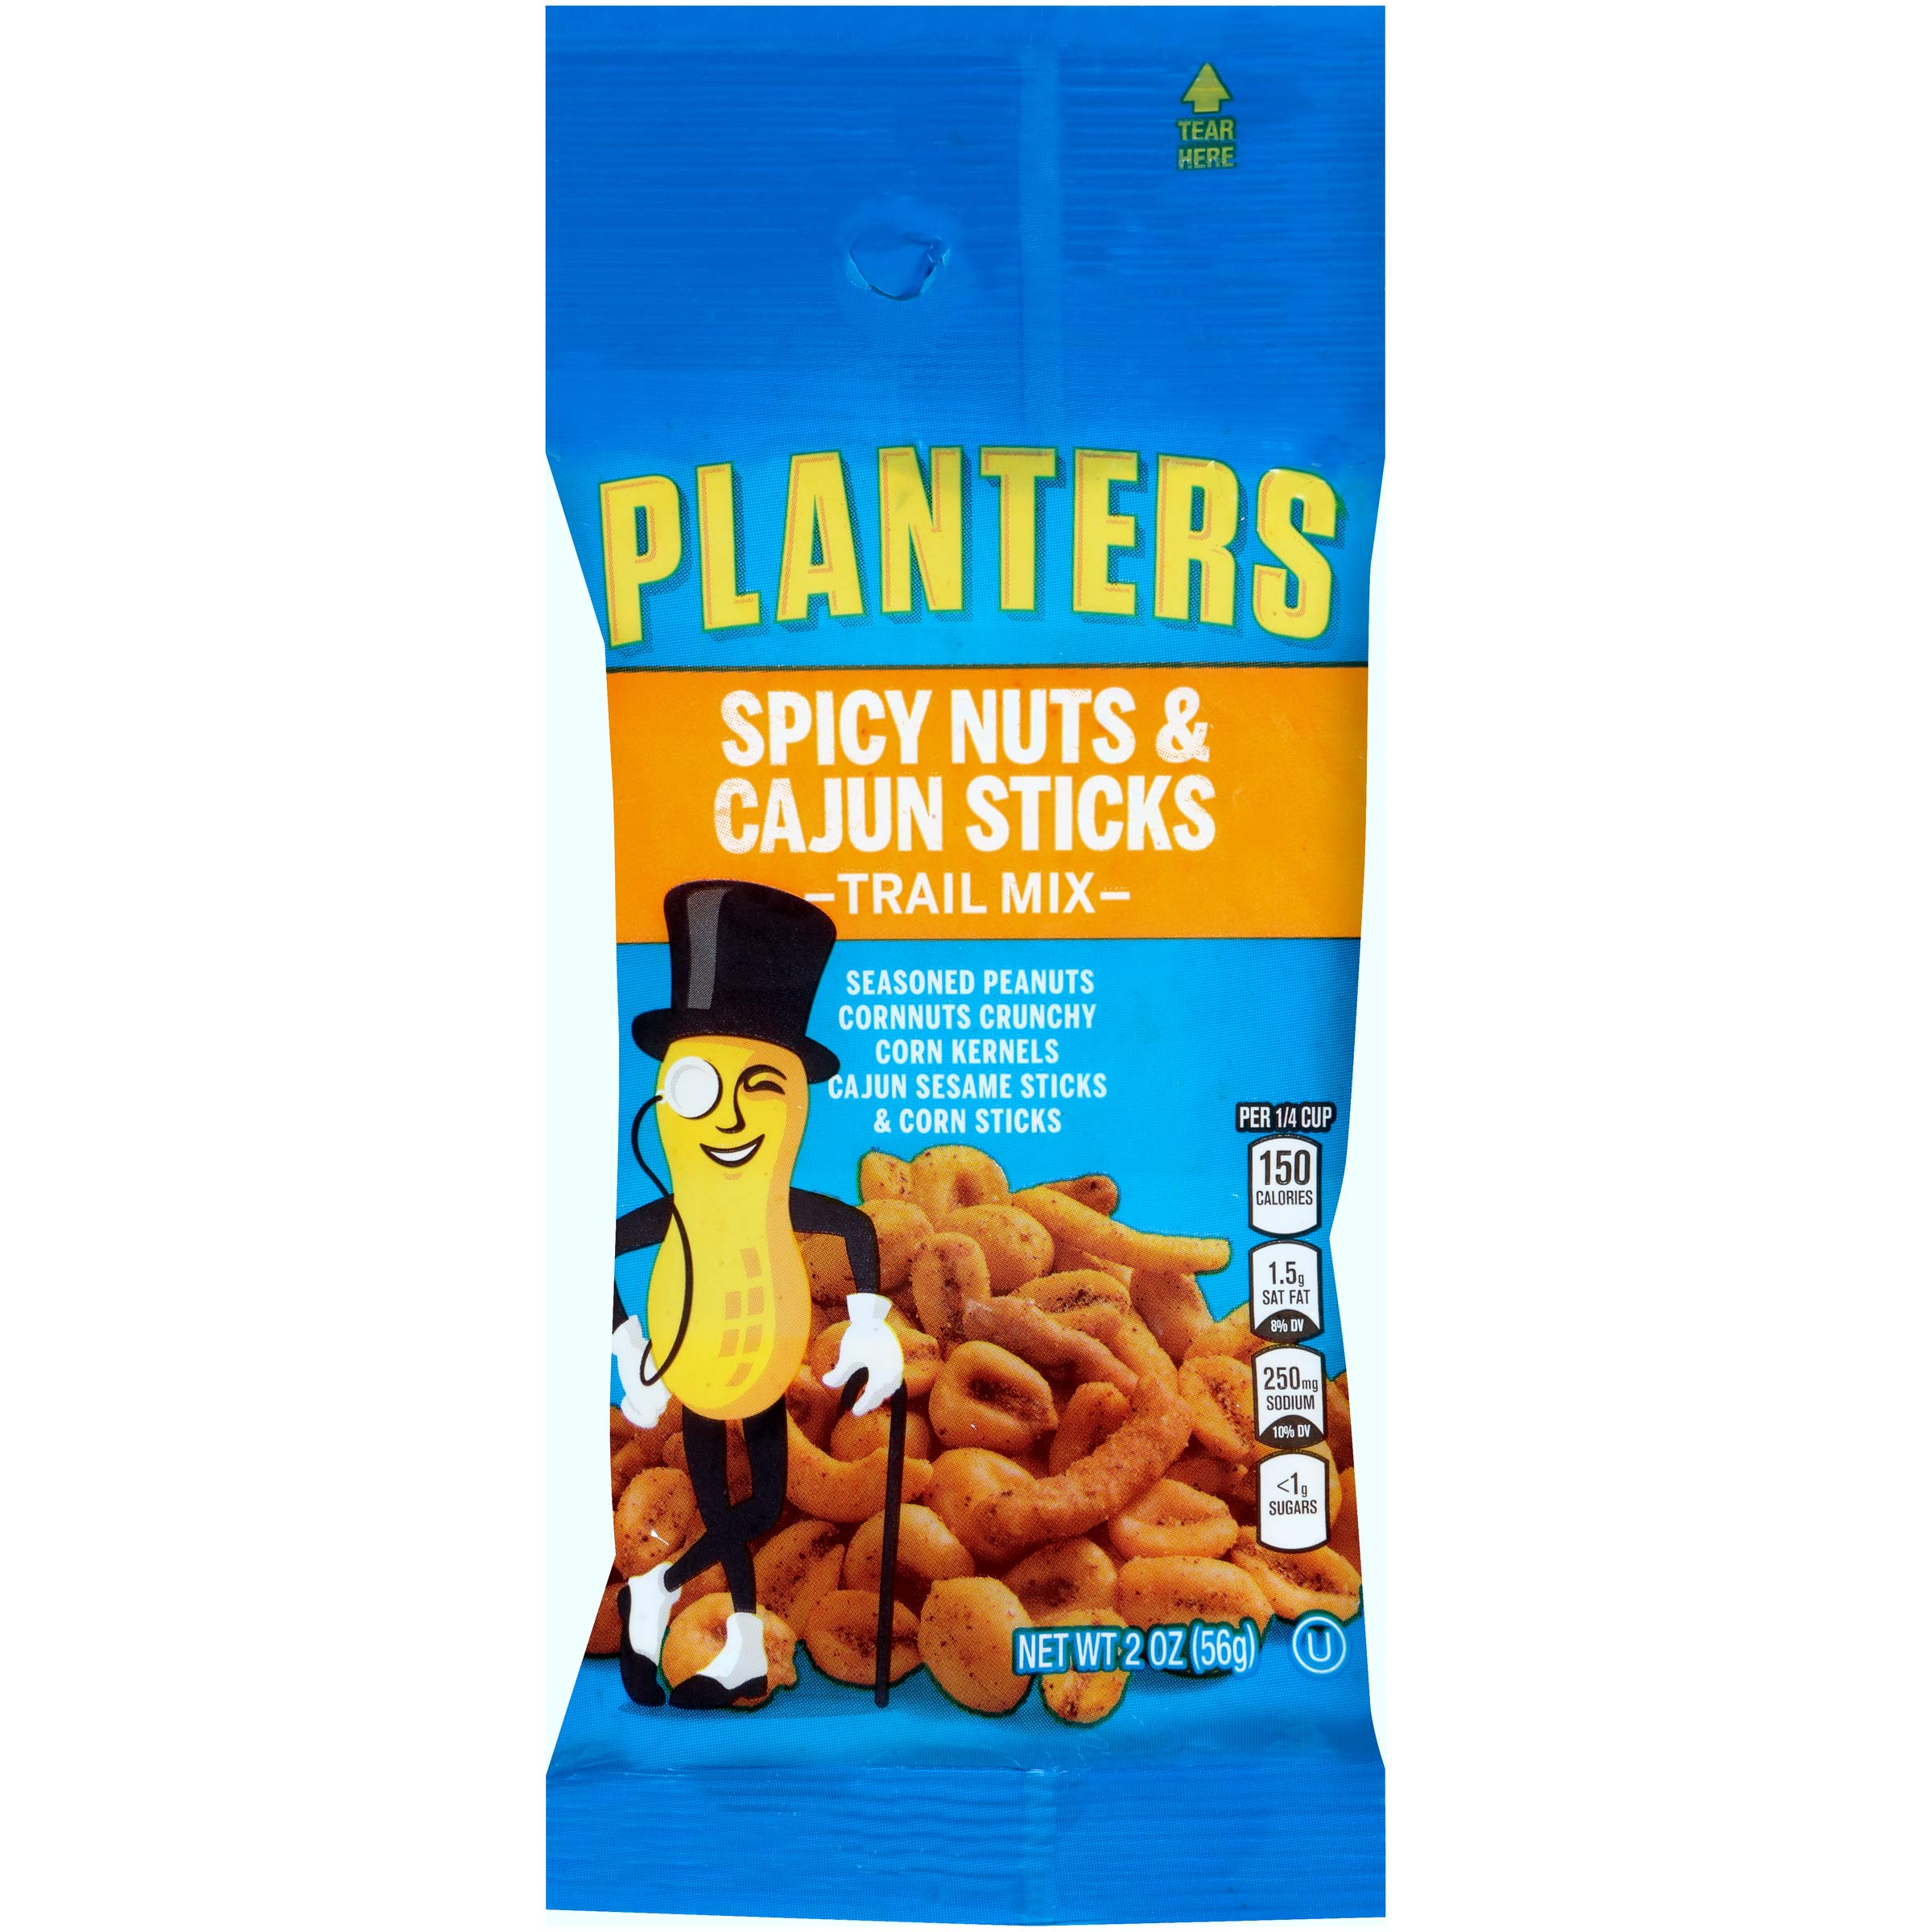 Planters Spicy Nuts & Cajun Sticks Trail Mix (2 oz Bag, Pack of 72) by Planters